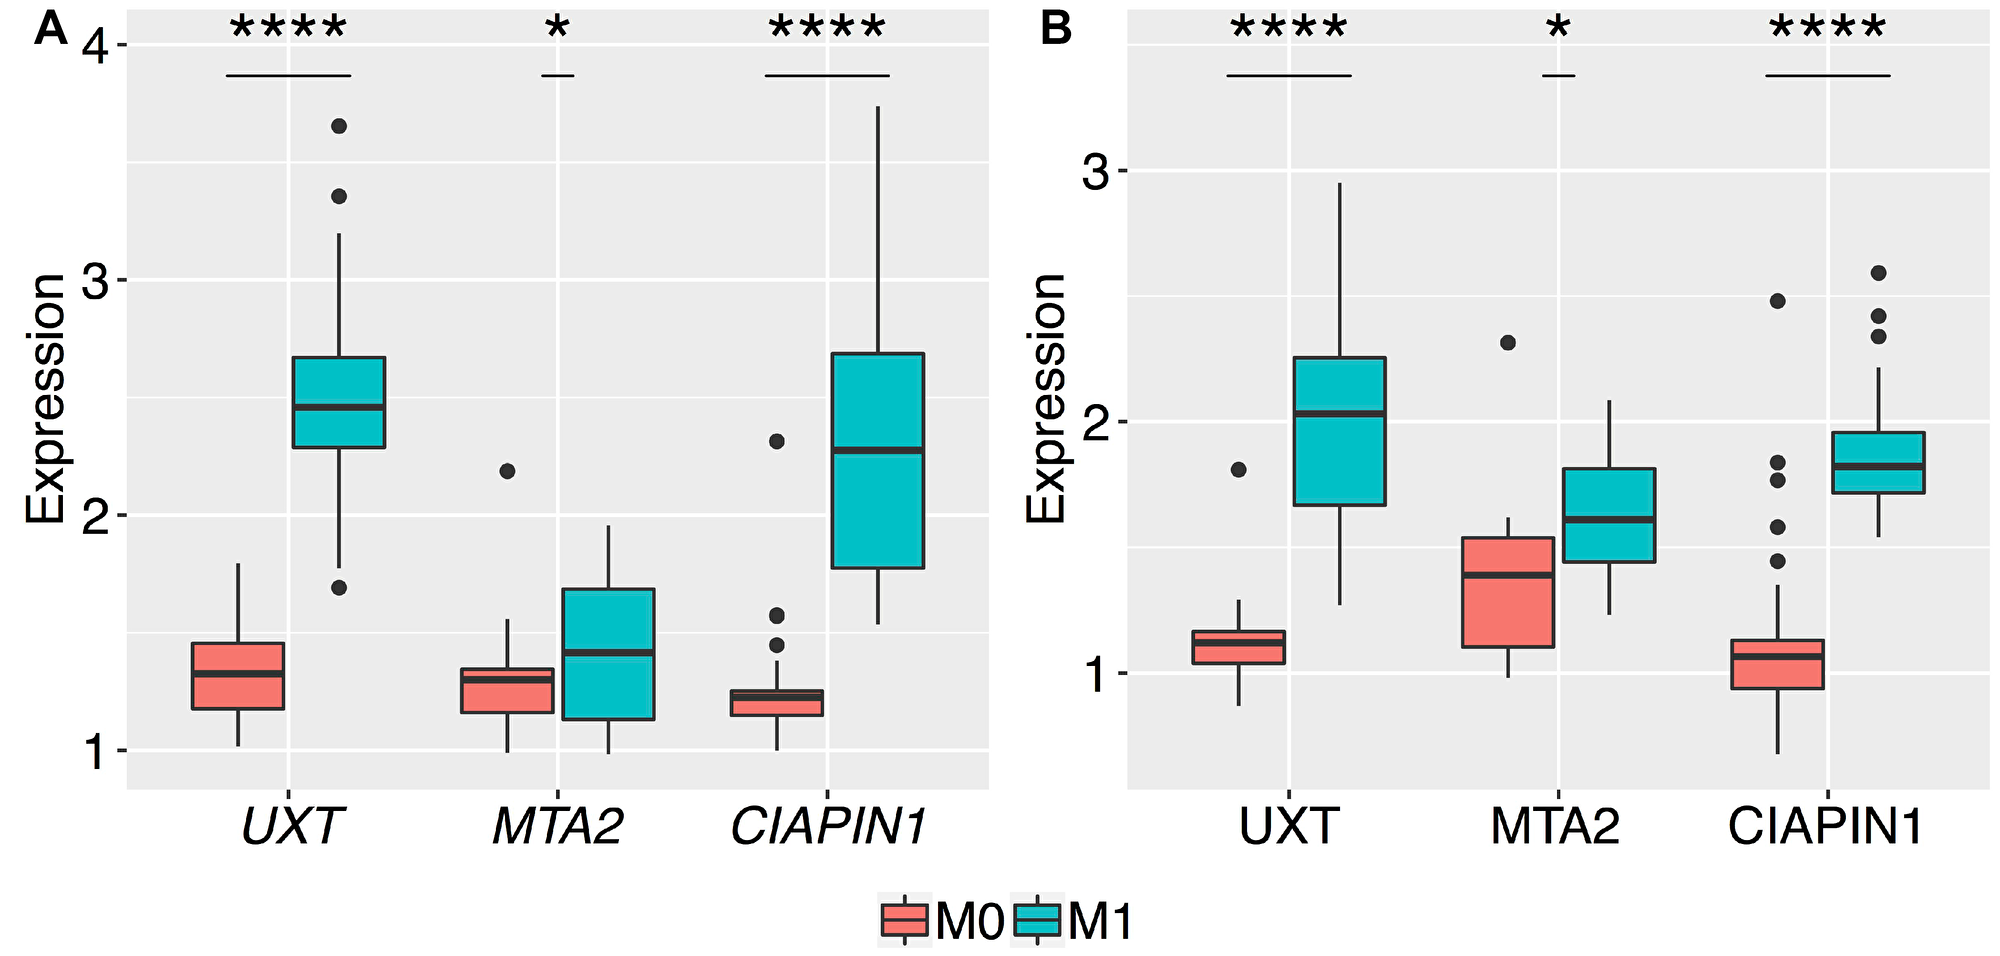 Box plots of the normalized relative expression of UXT, MTA2, and CIAPIN1 genes in the gastric tumor tissues of patients without metastasis (M0) and with metastasis (M1).